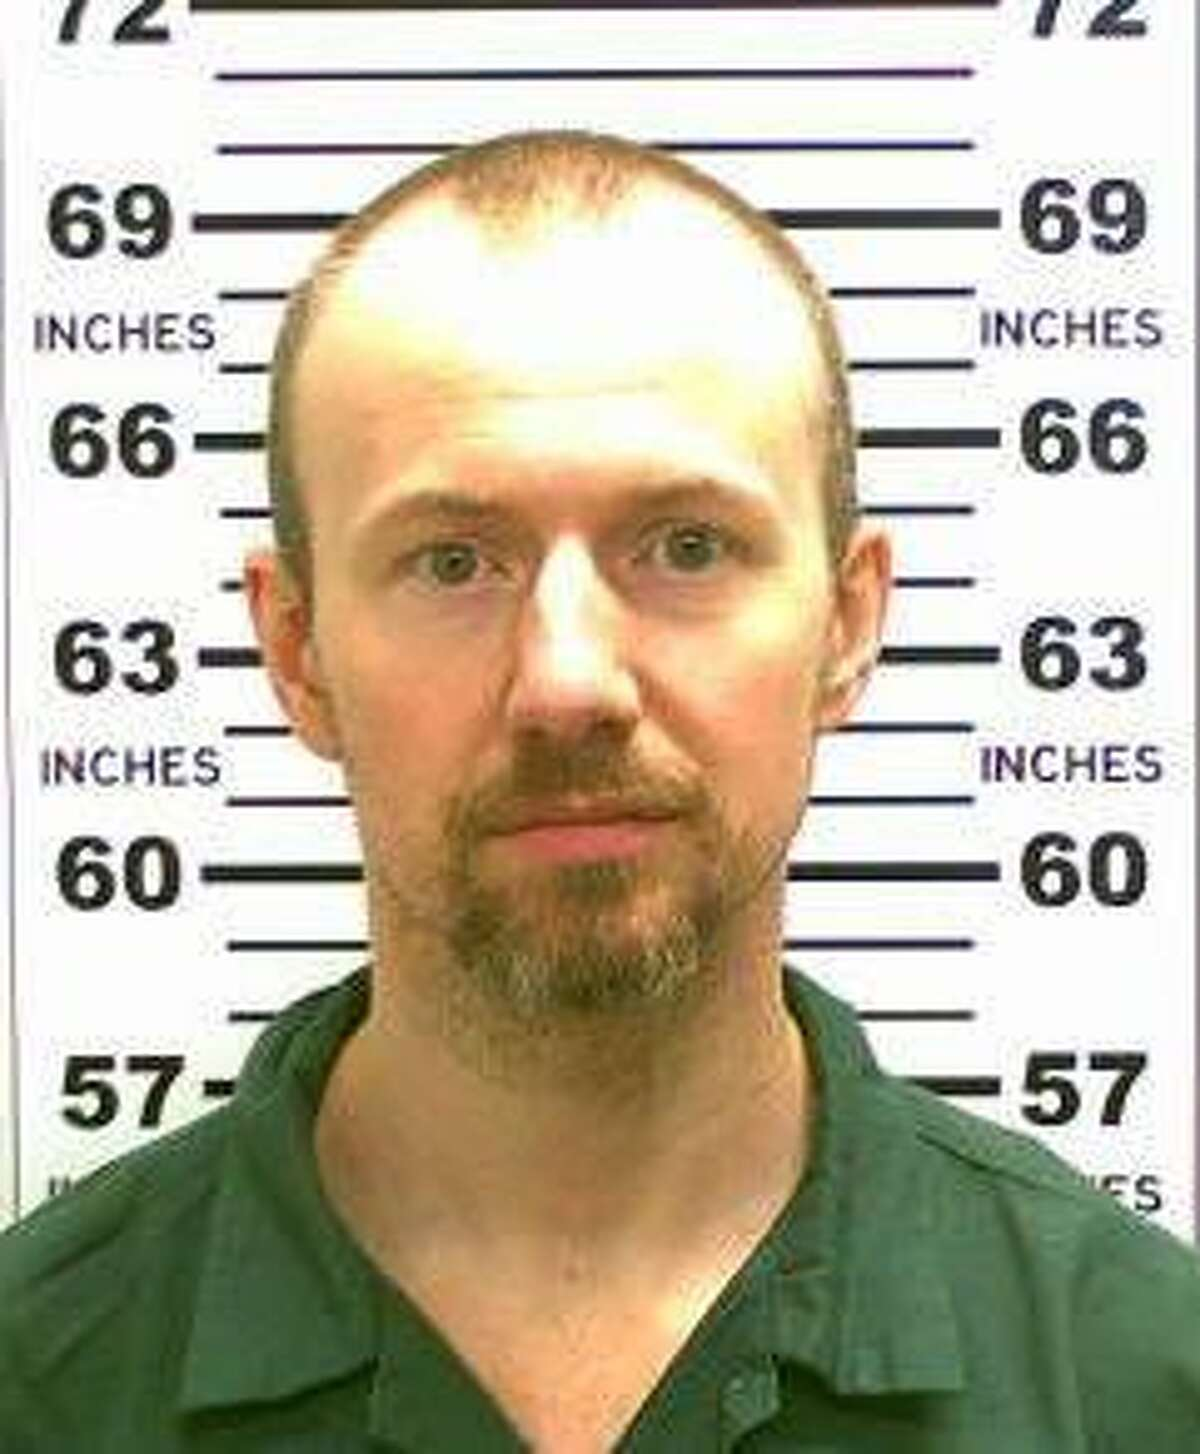 This undated photo released by the New York State Police shows David Sweat. Authorities say 48-year-old Richard Matt and 34-year-old David Sweat escaped from the Clinton Correctional Facility in Dannemora. (New York State Police via AP)